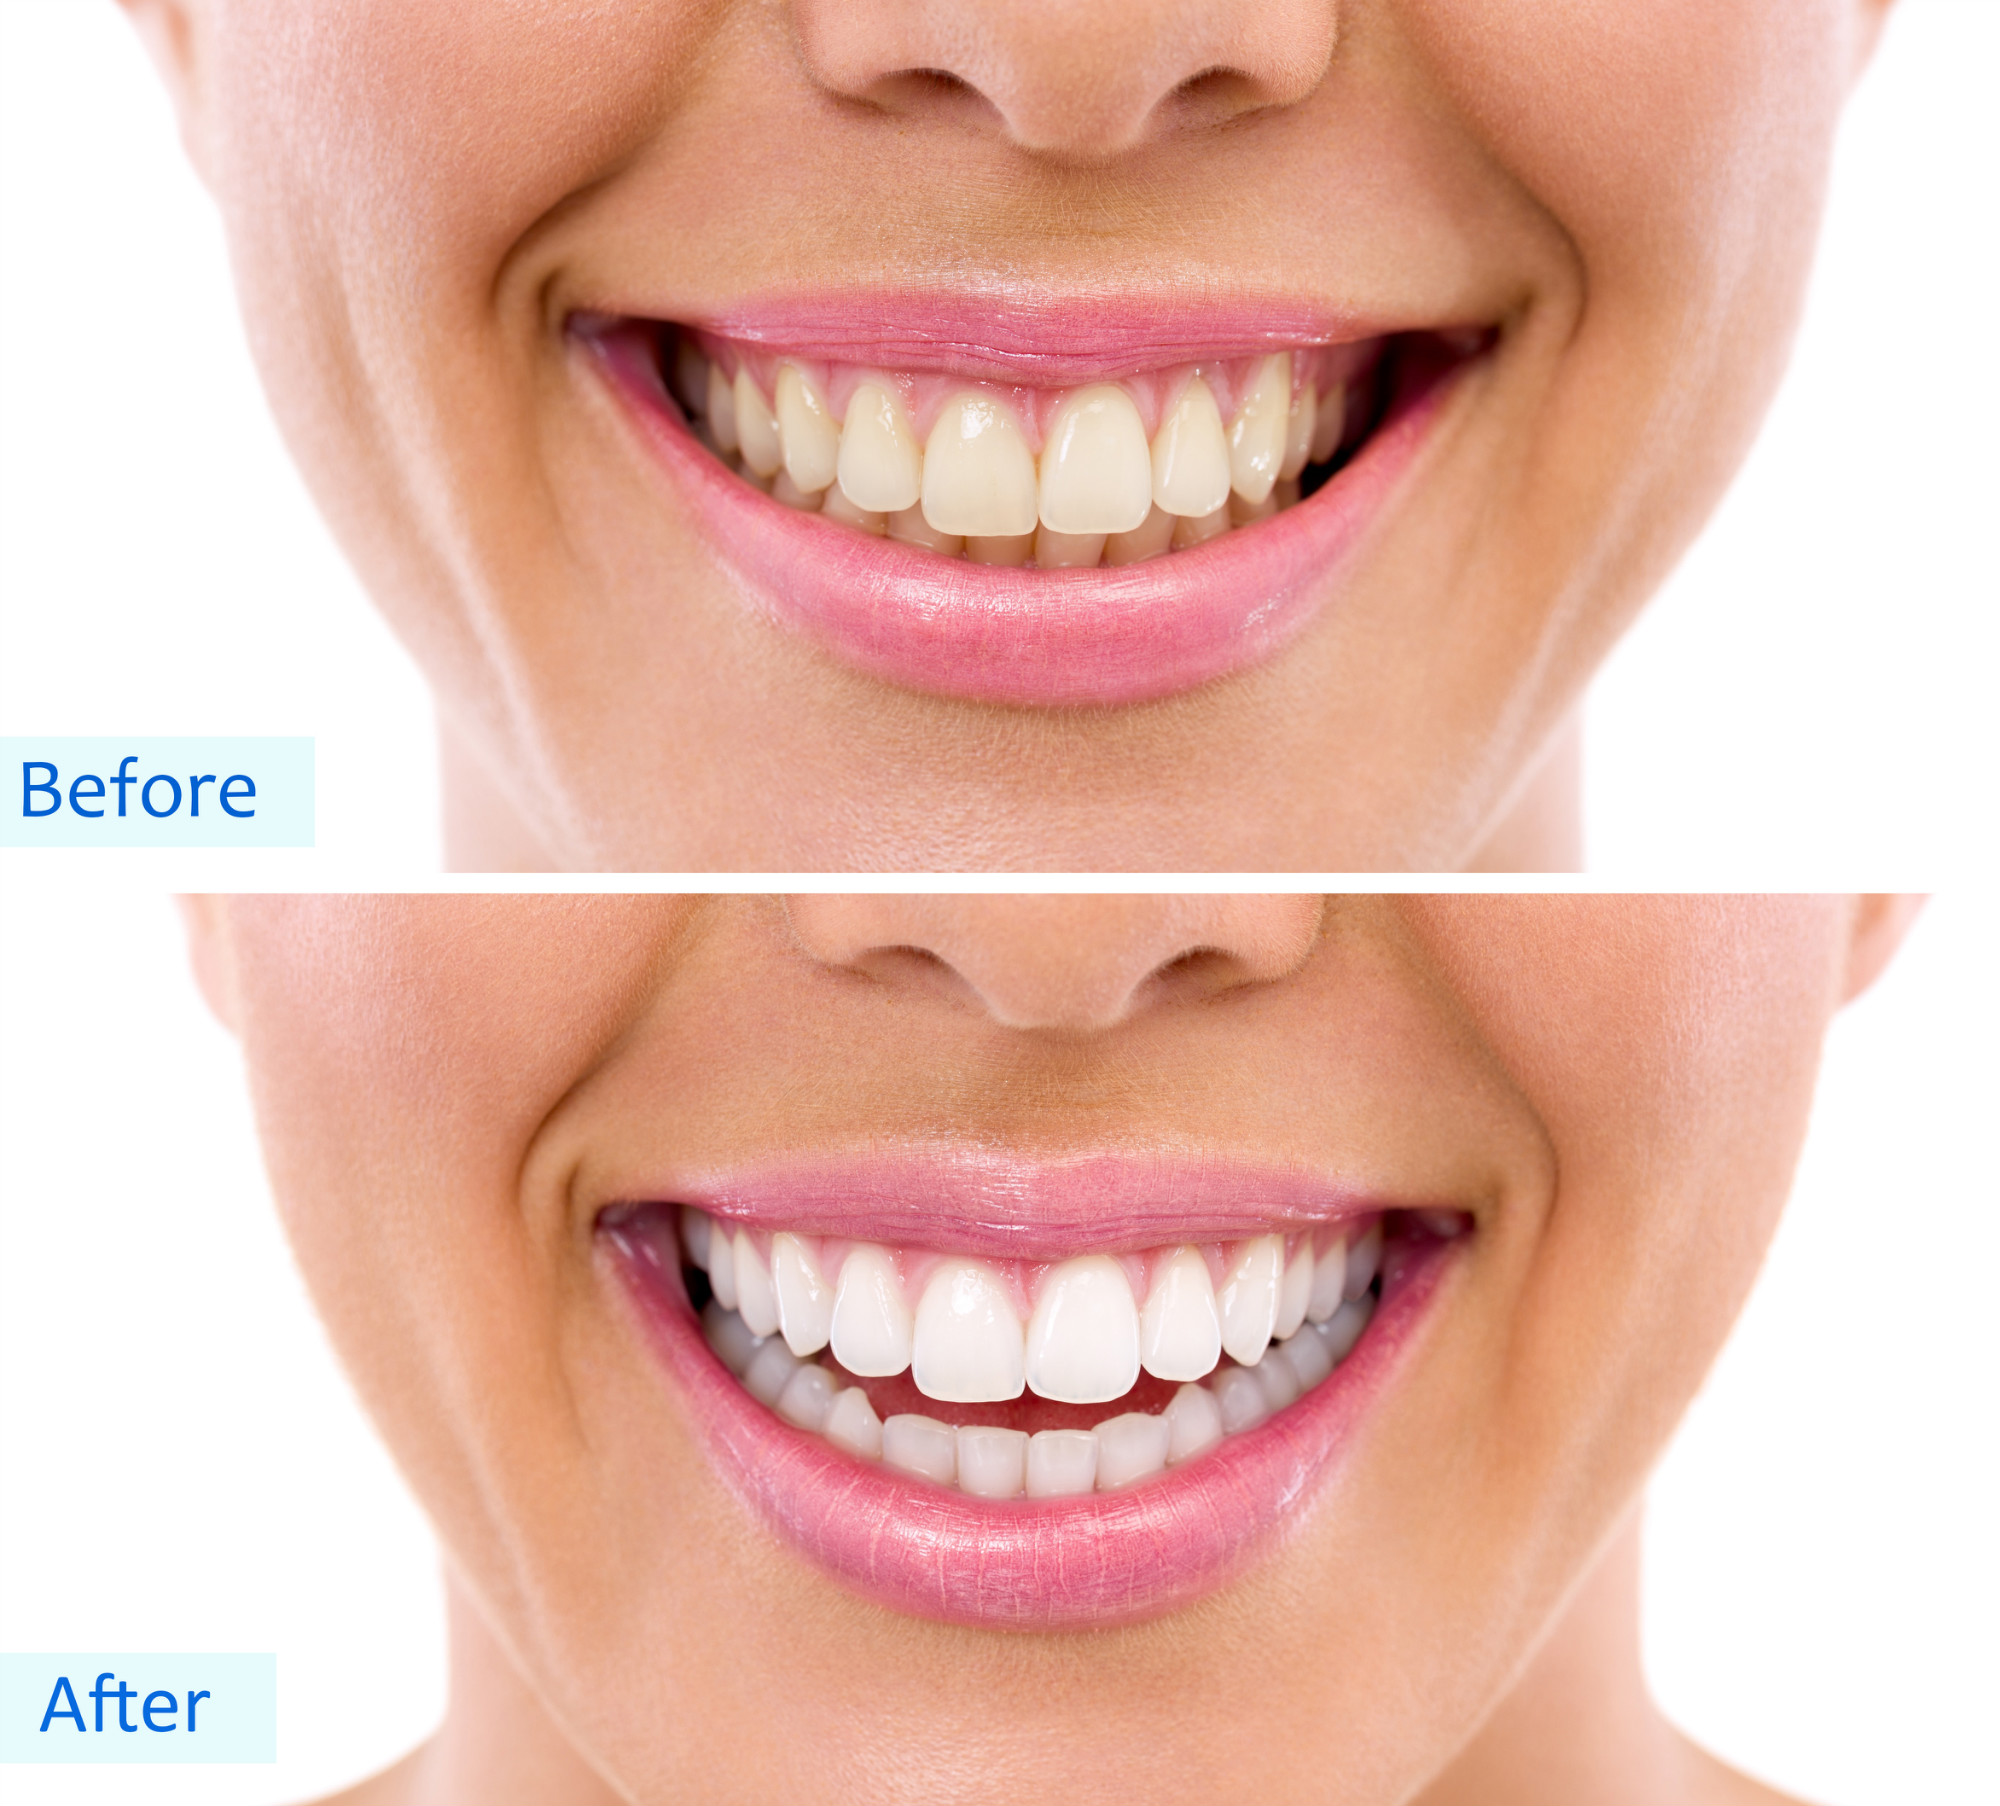 Home Teeth Whitening Kits A 101 Introduction Toothstars